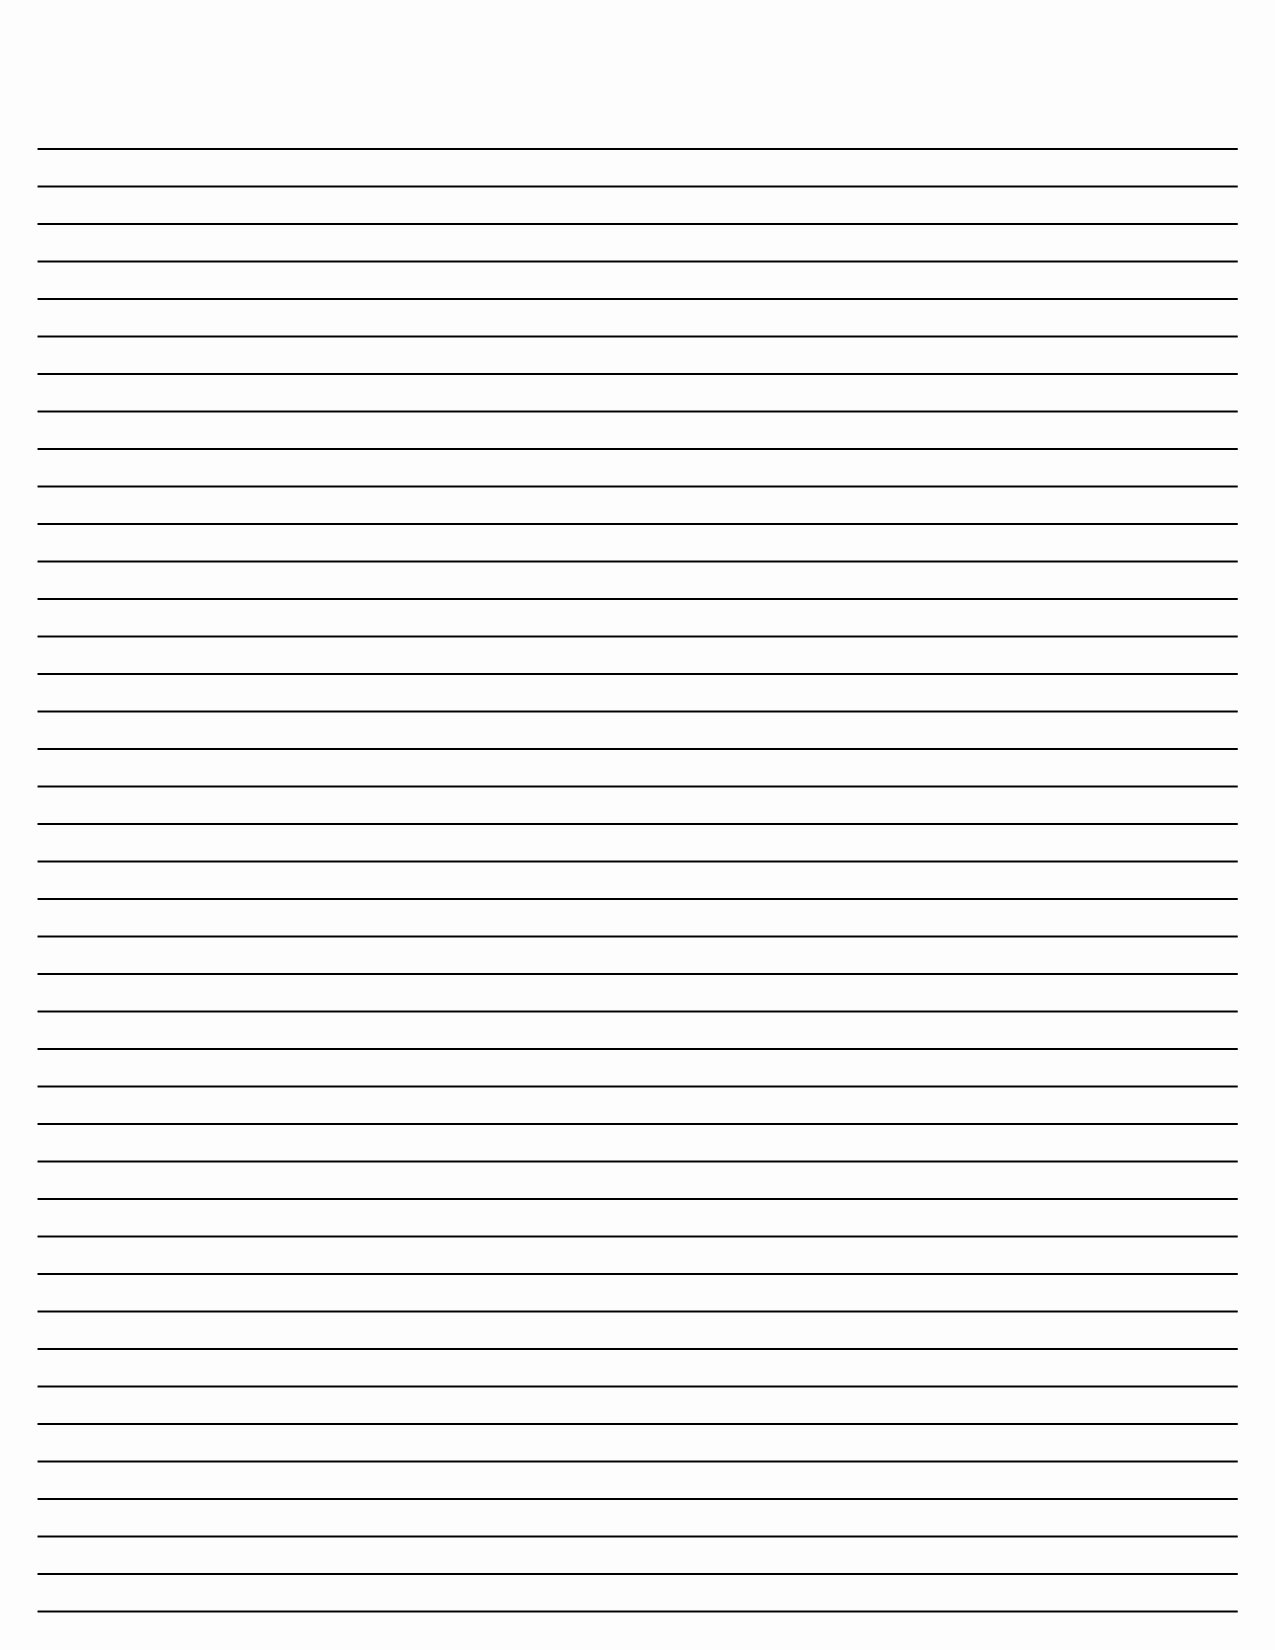 Free Printable Lined Paper New Blank Lined Paper Template